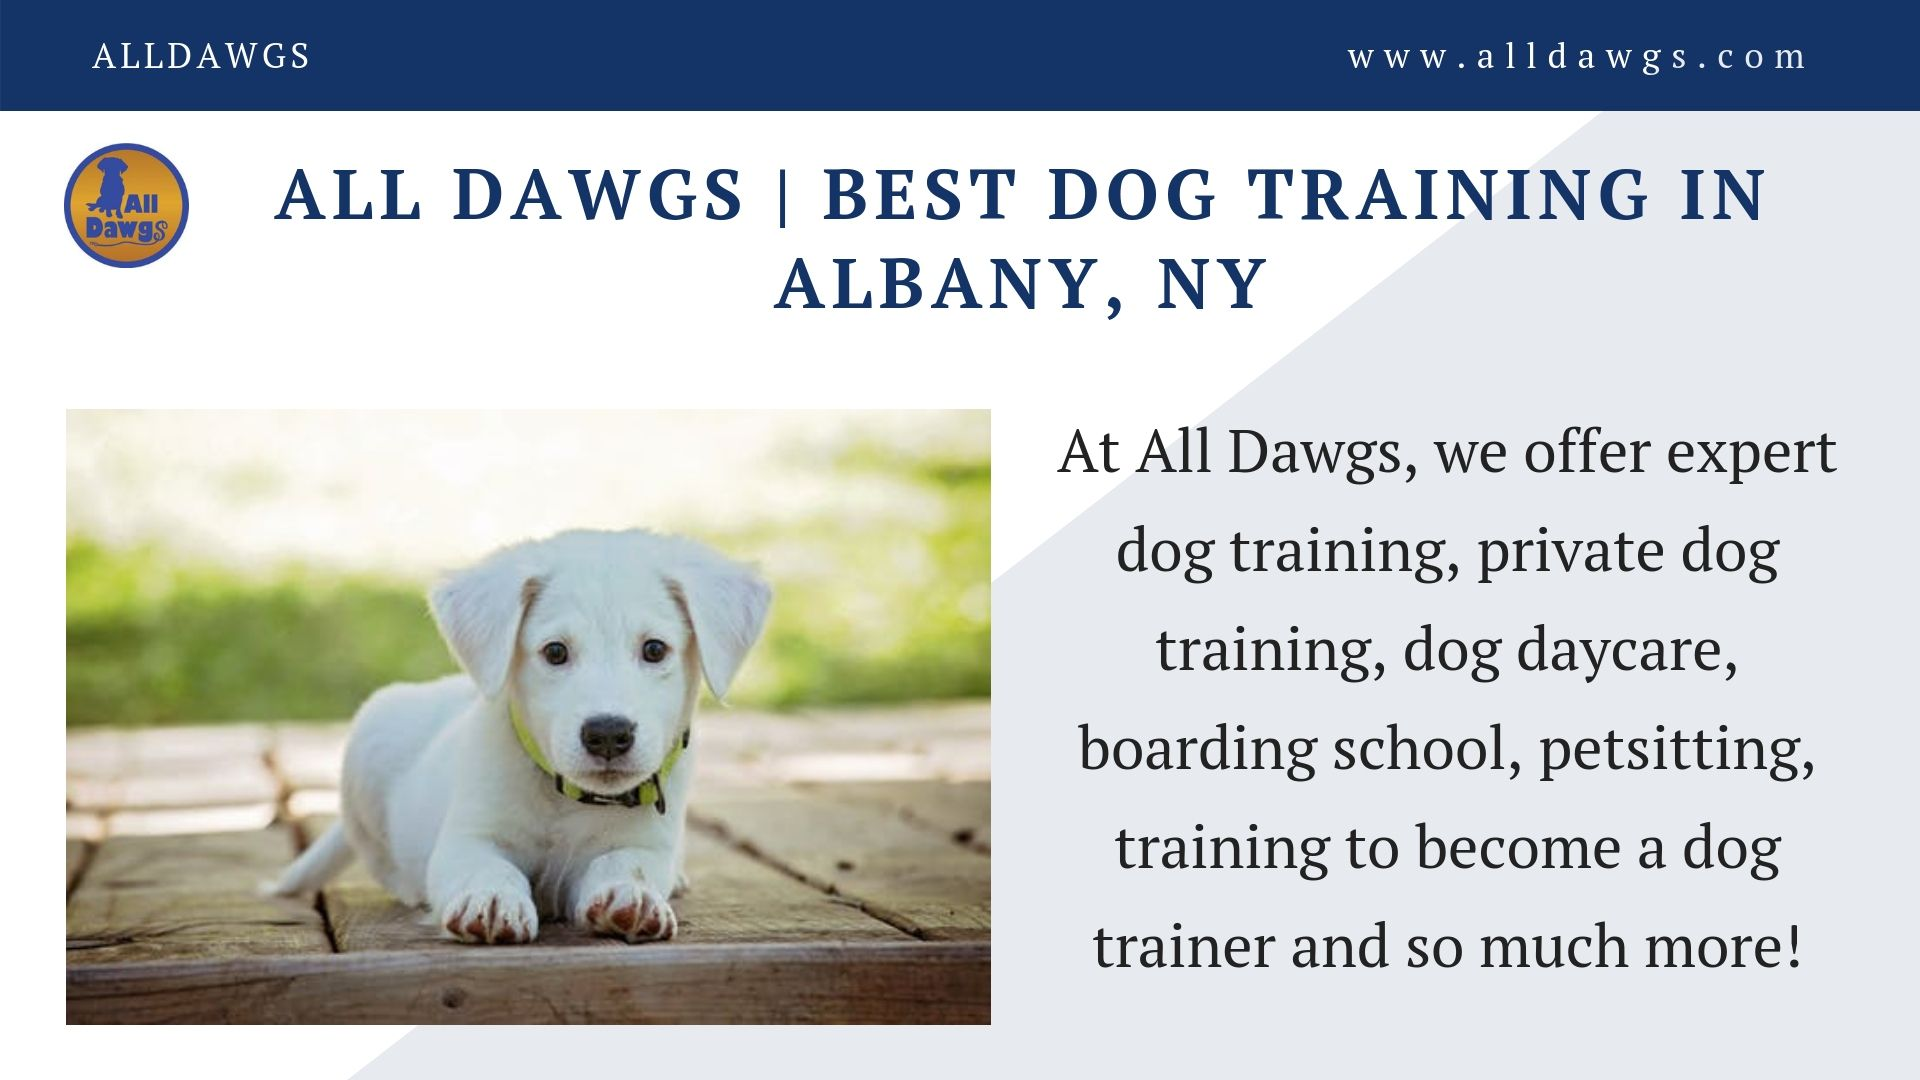 All Dawgs Offers The Best Dog Training In Albany If You Are